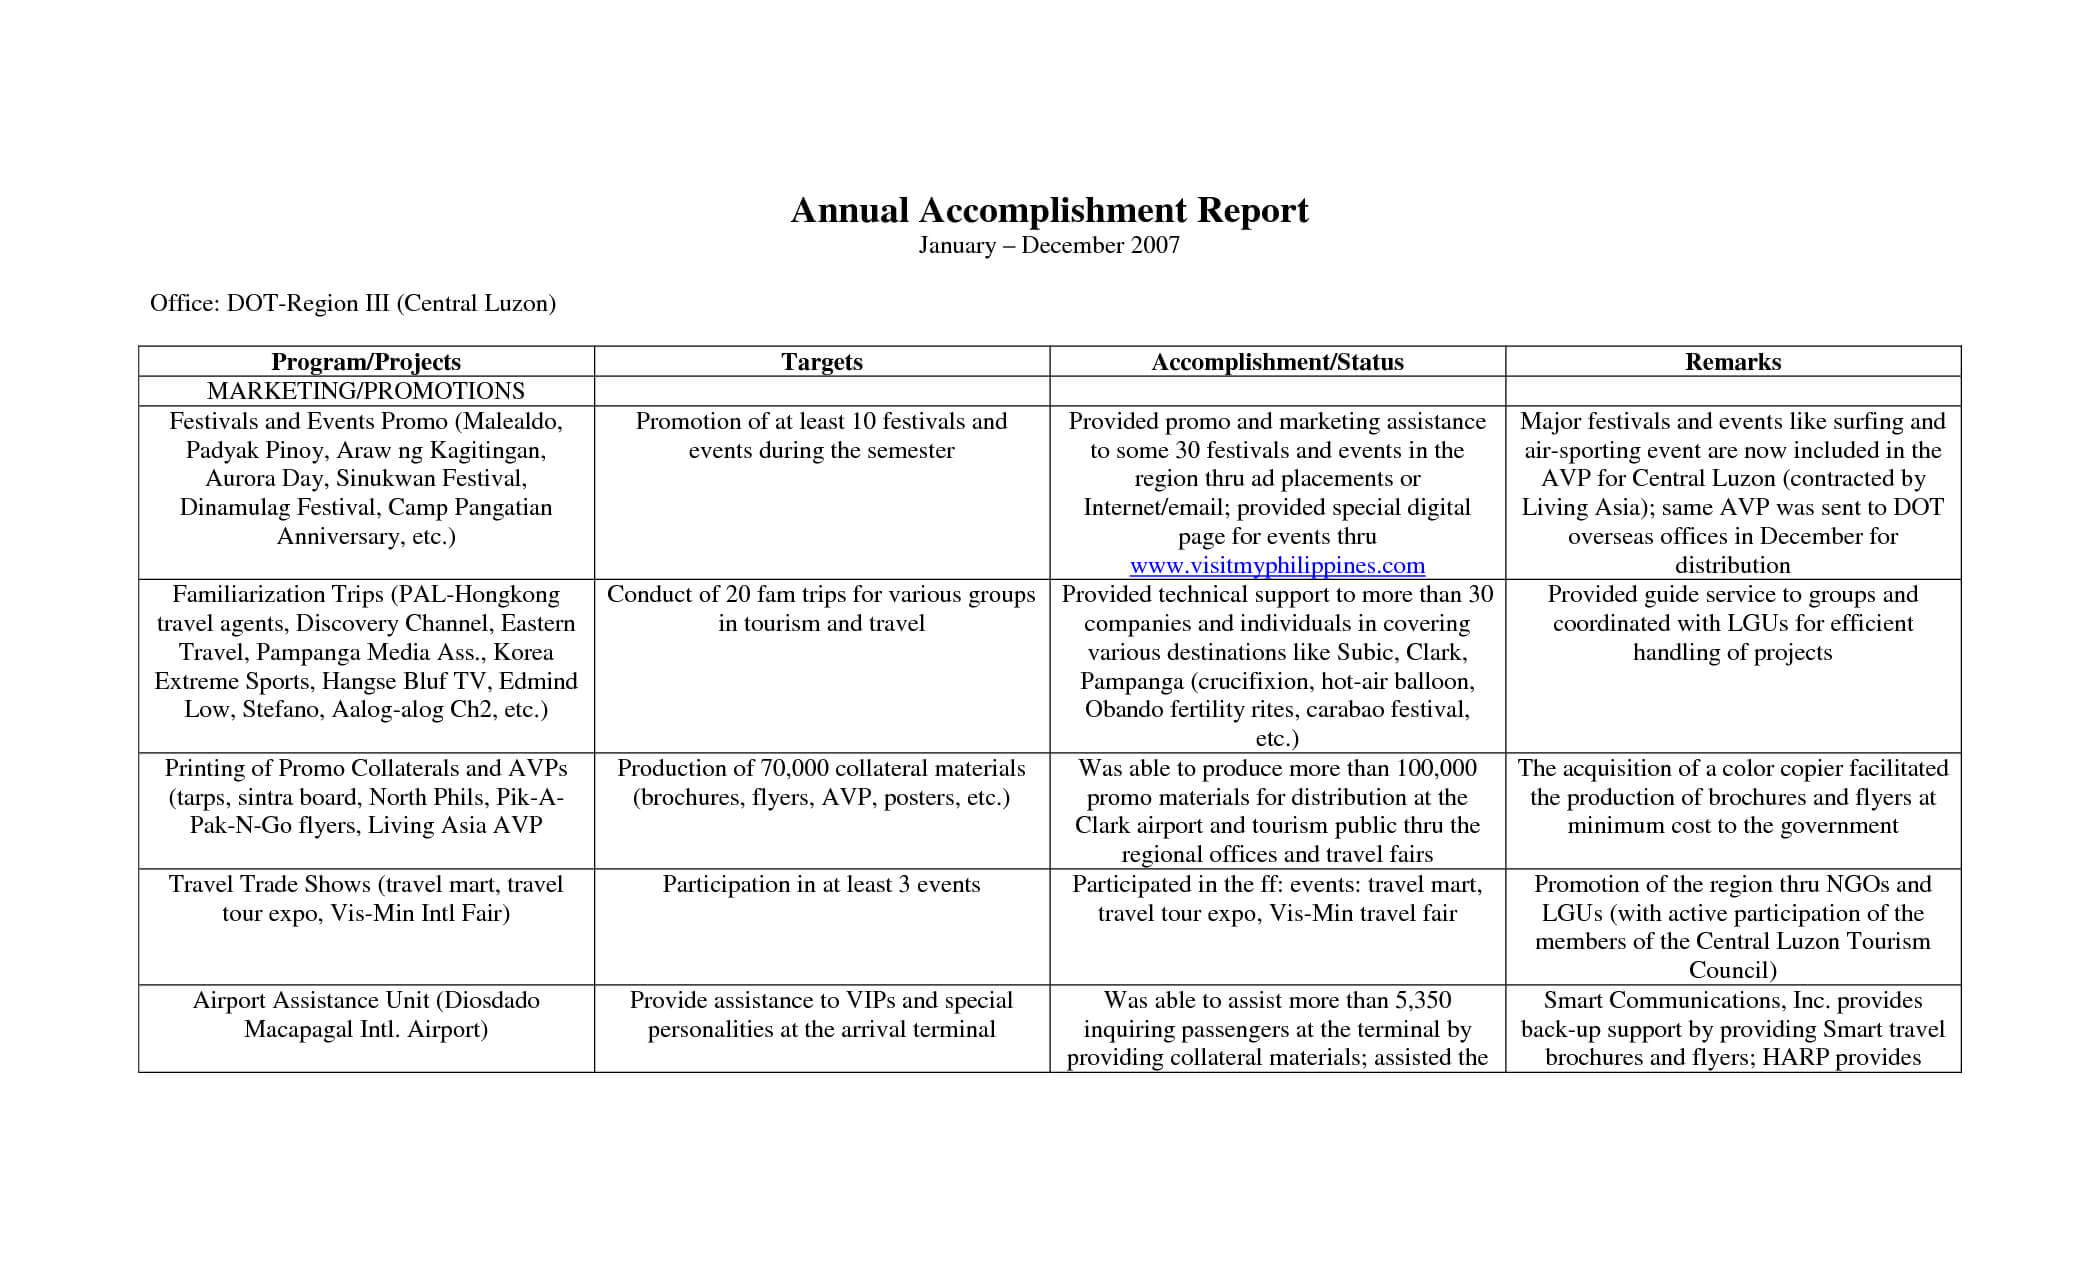 Annual Accomplishment Report Sample With Table Format : Venocor With Regard To Weekly Accomplishment Report Template